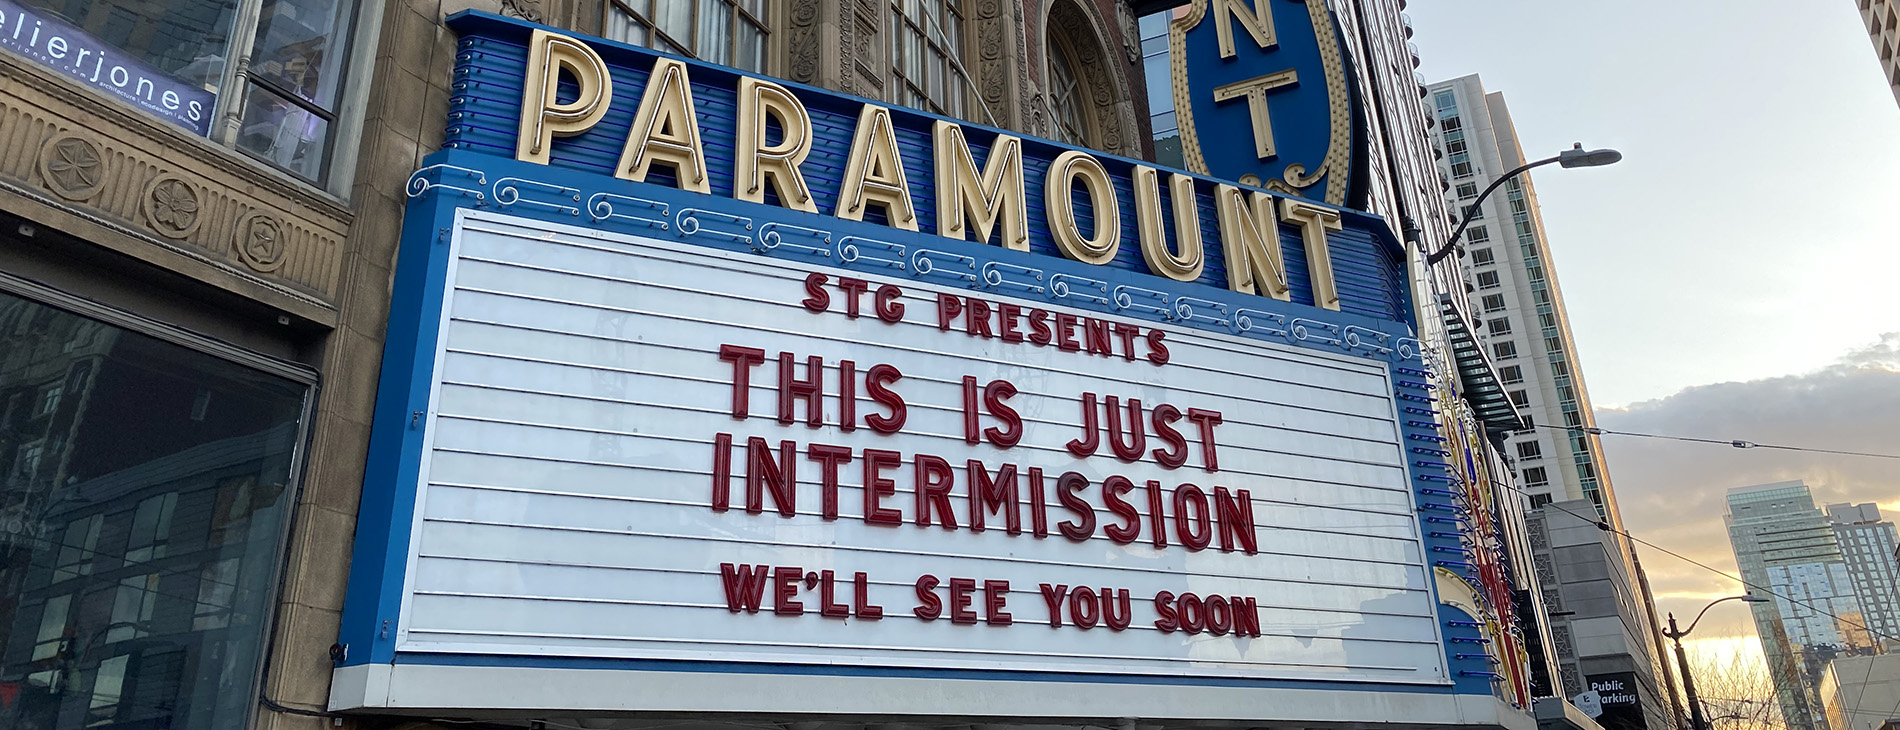 This is just intermission as text on the Paramount marquee